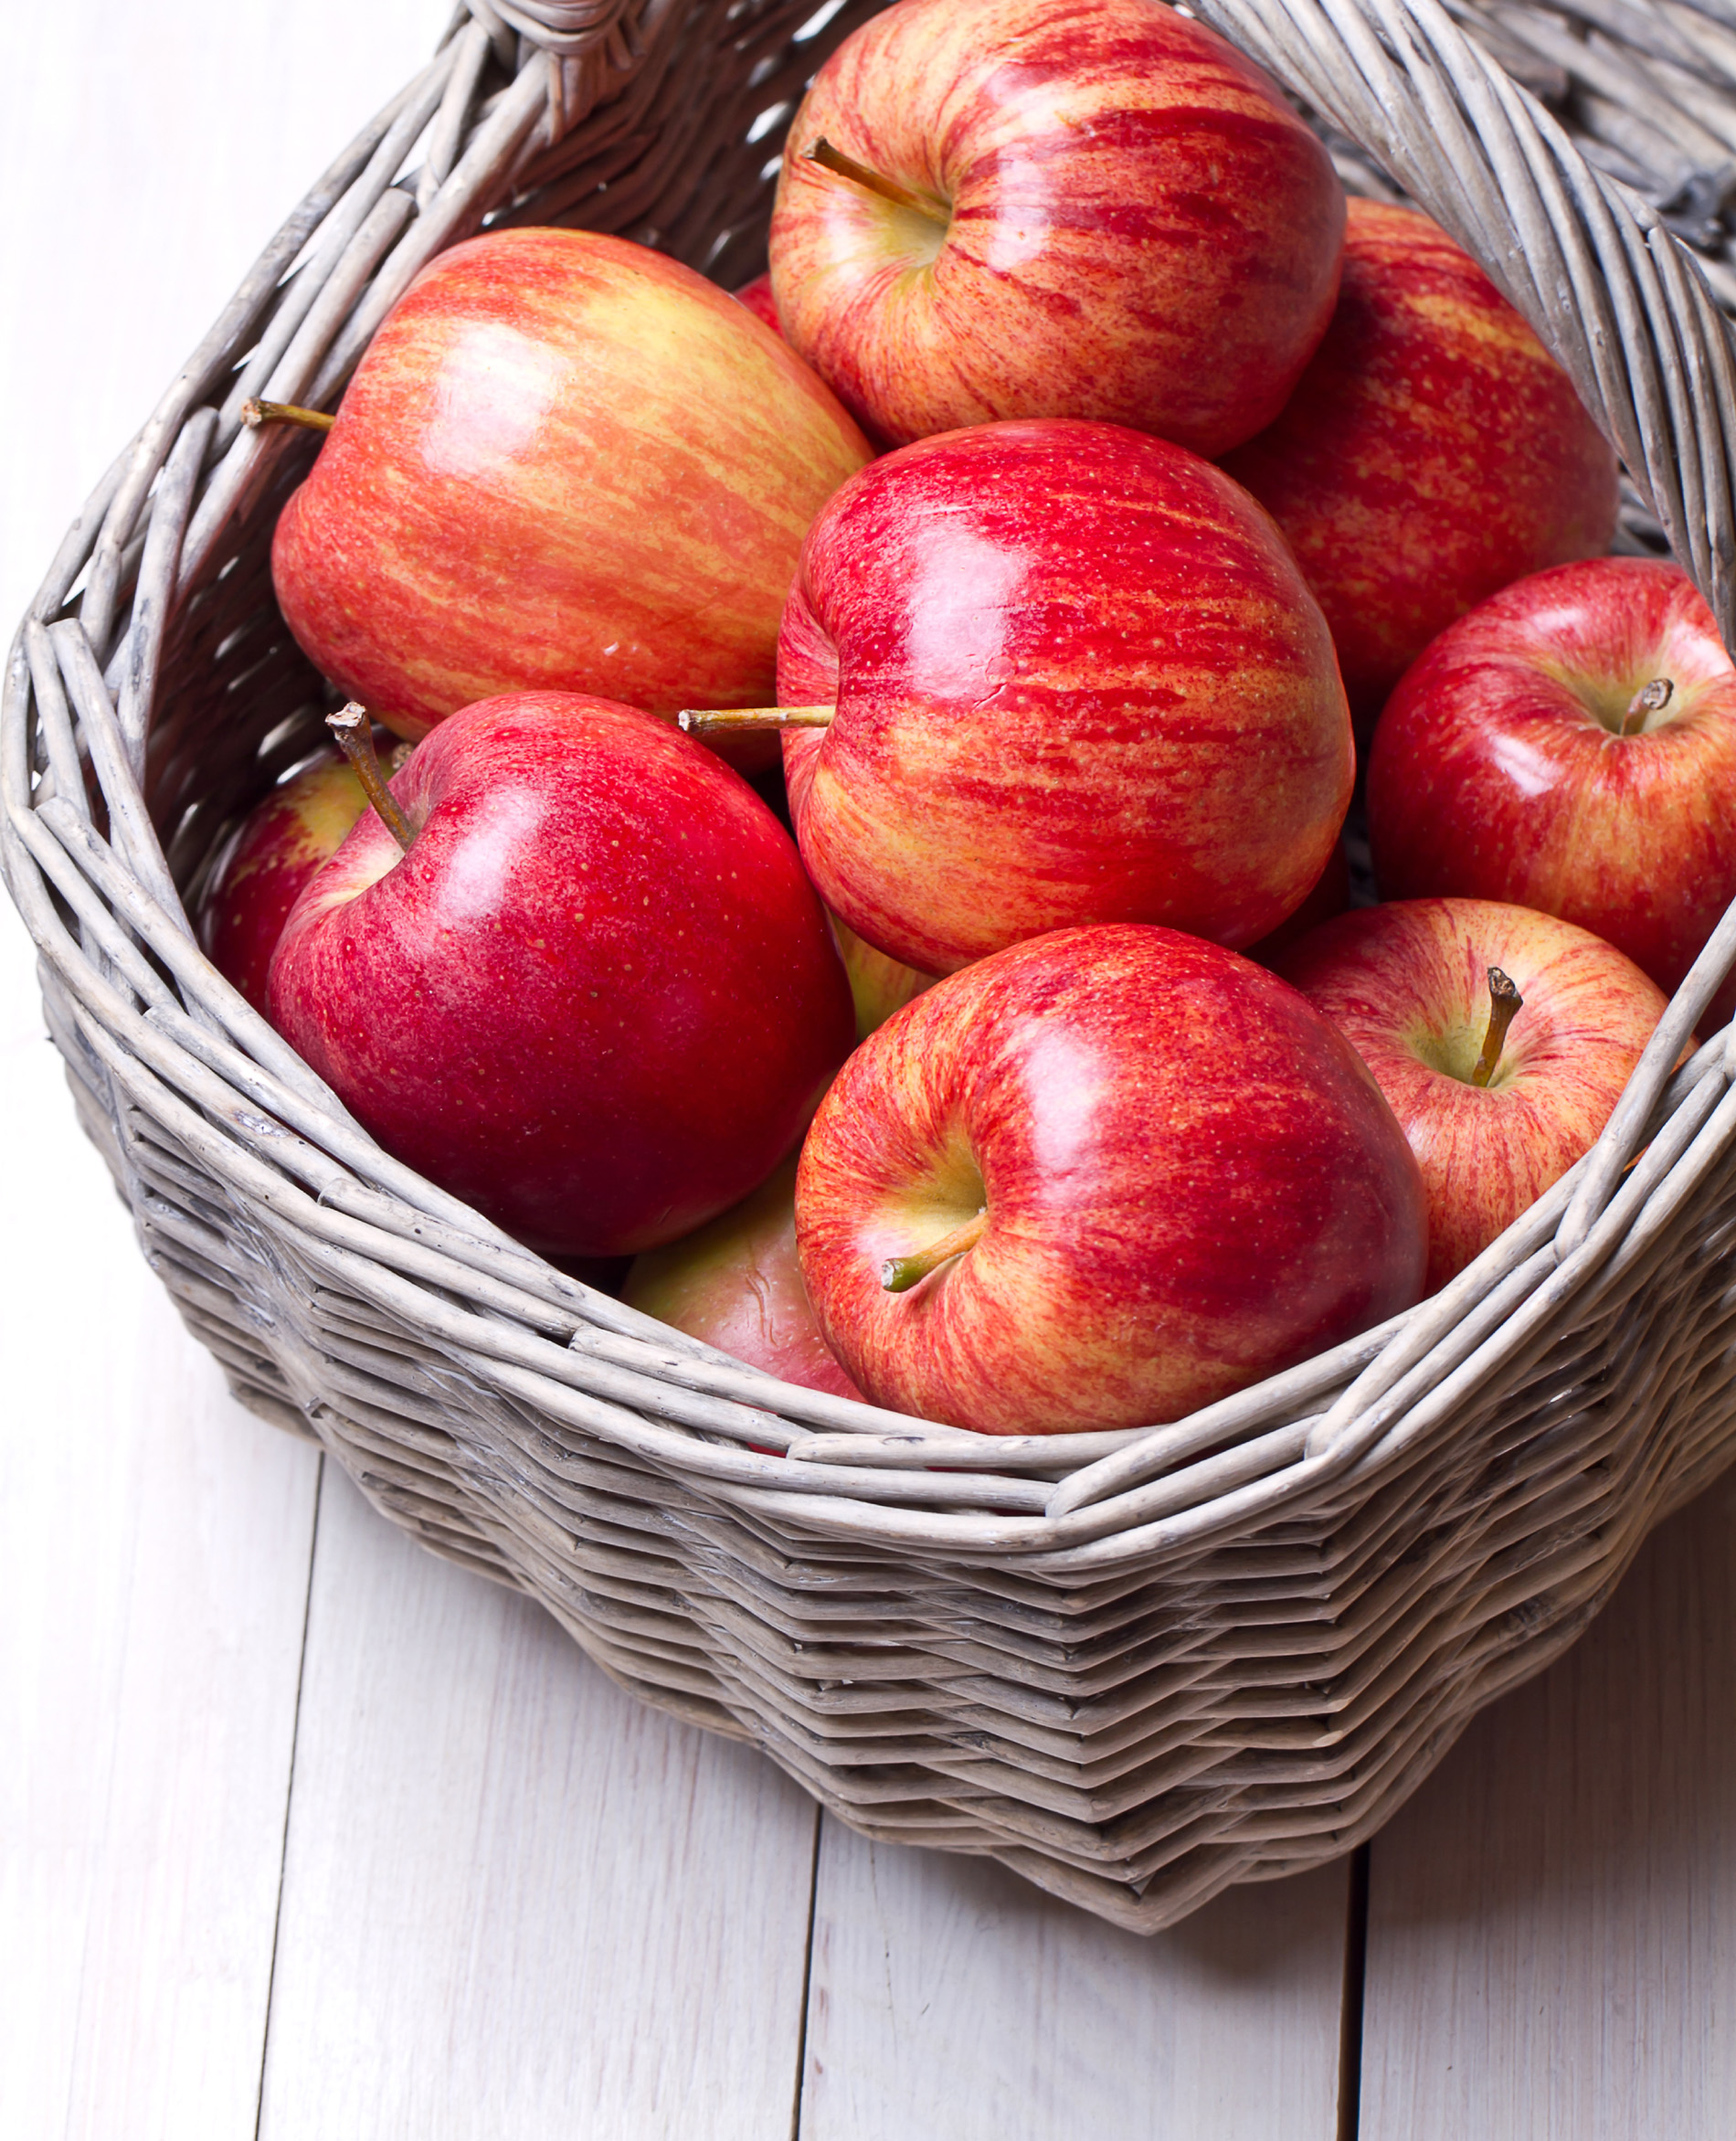 Put it in the basket of red apples 52347